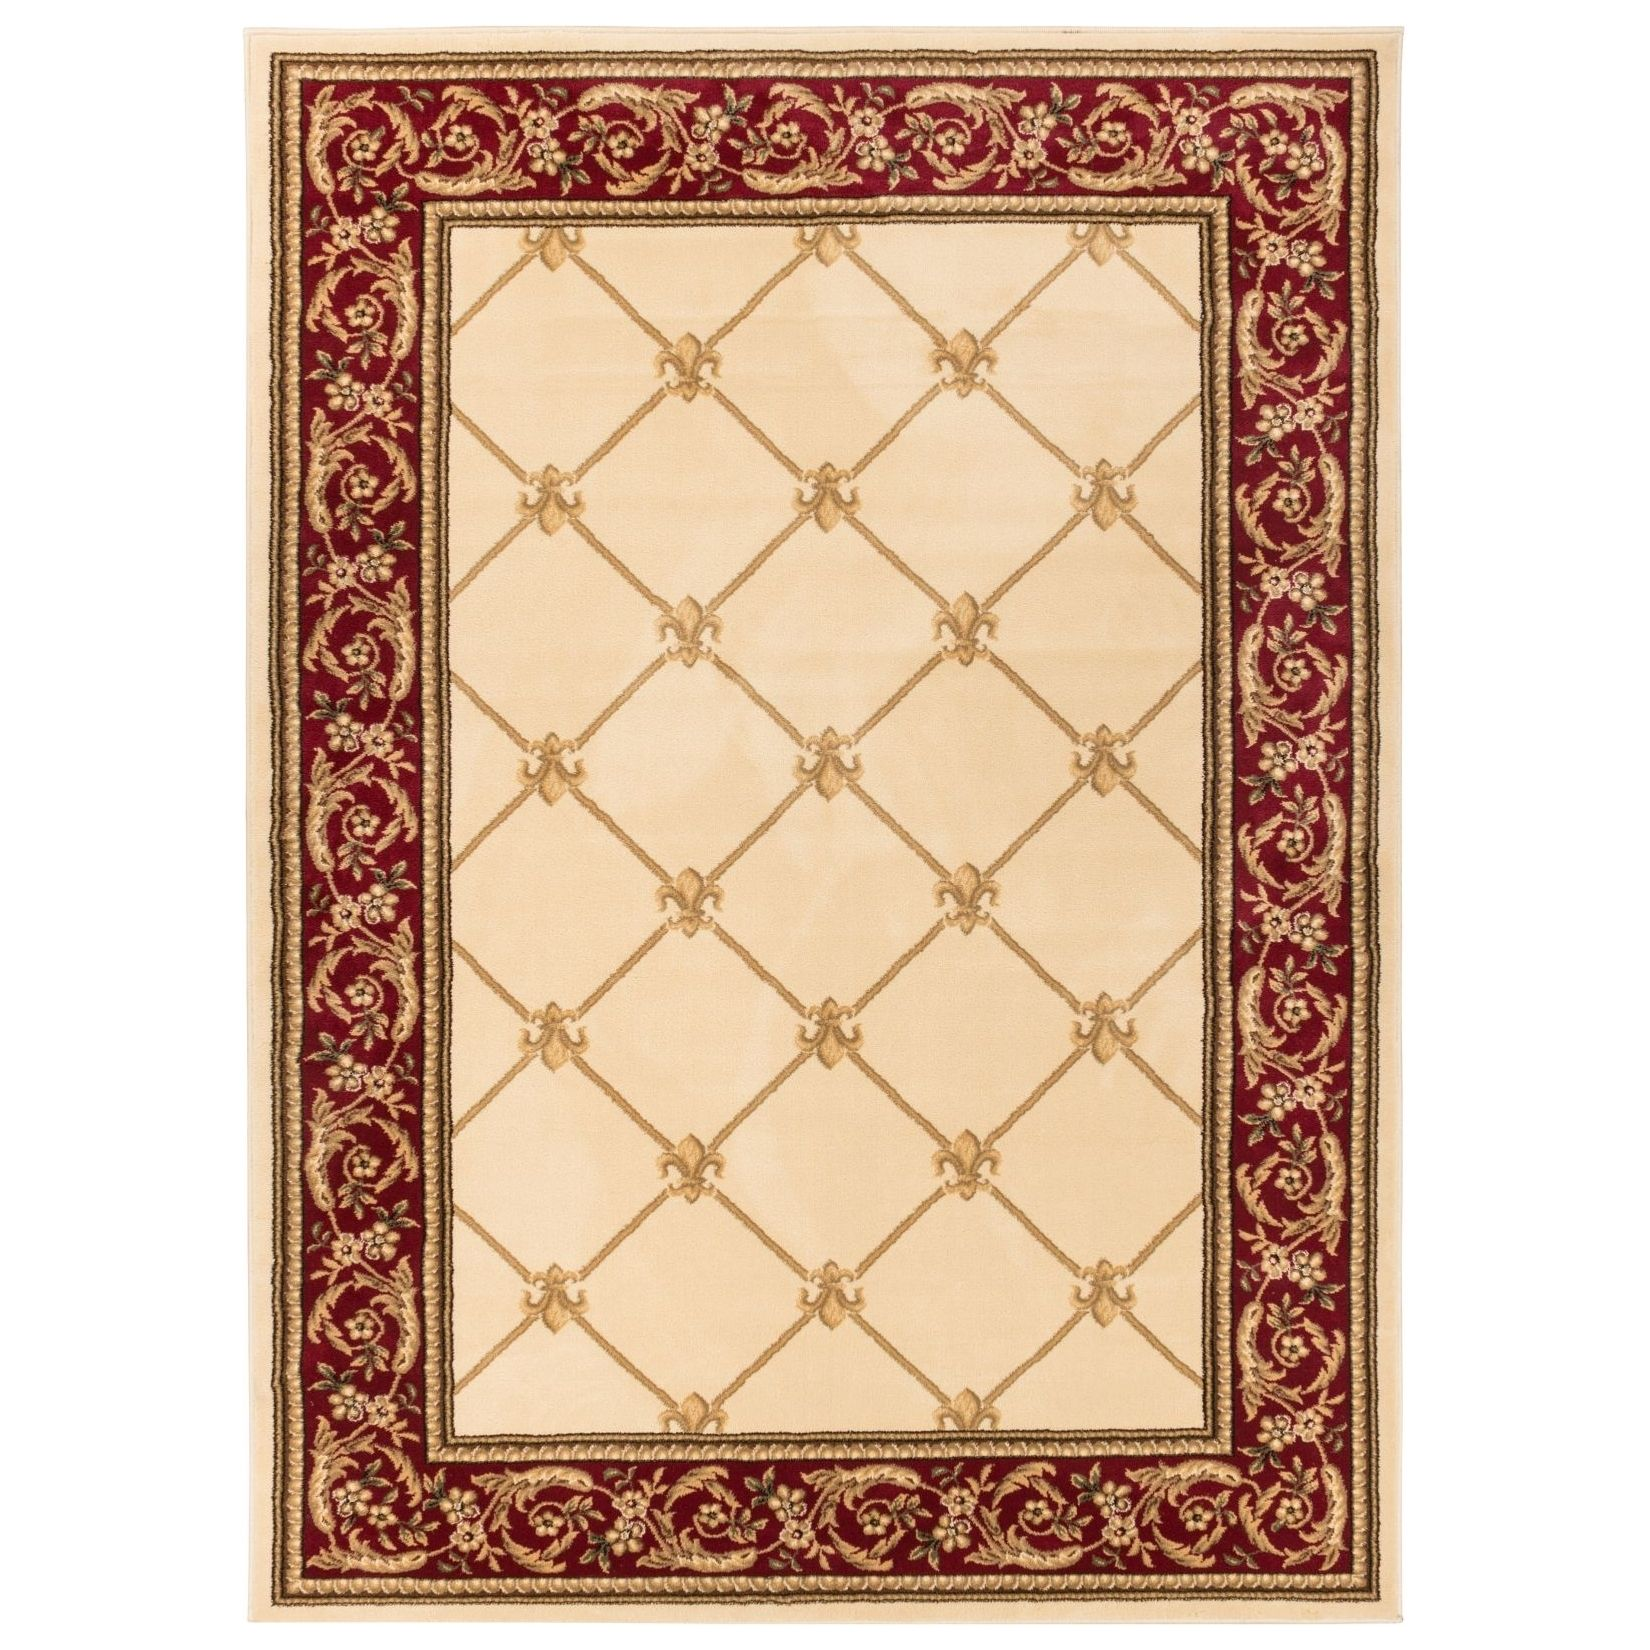 Well-woven Vanguard Fleur-de-lis Trellis Lattice French European Classic Traditional Dinging Living Room Area Rug